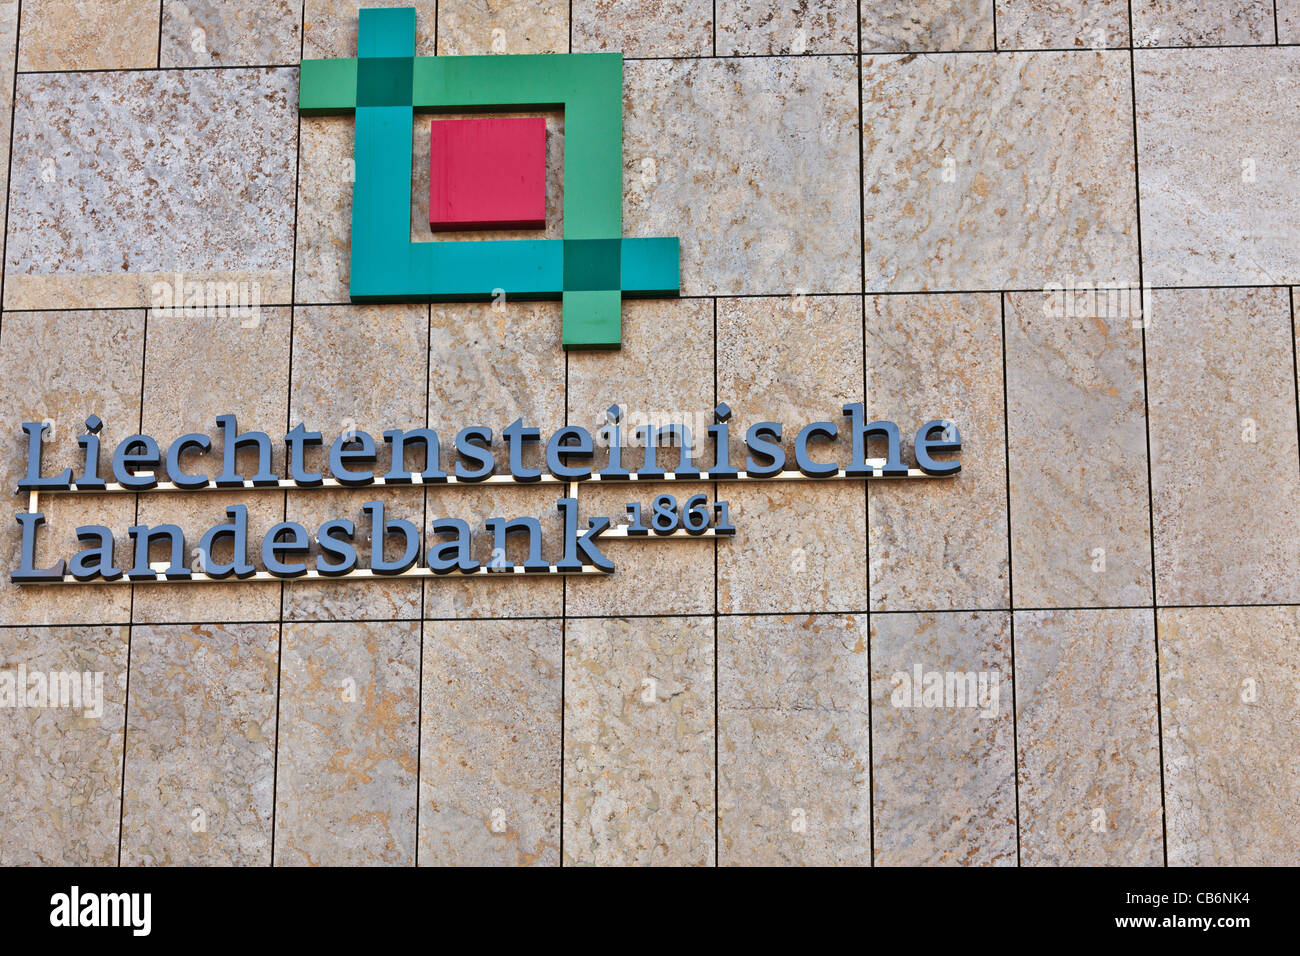 Headquarters of the Liechtensteinische Landesbank in Vaduz, Principality of Liechtenstein, Europe - Stock Image